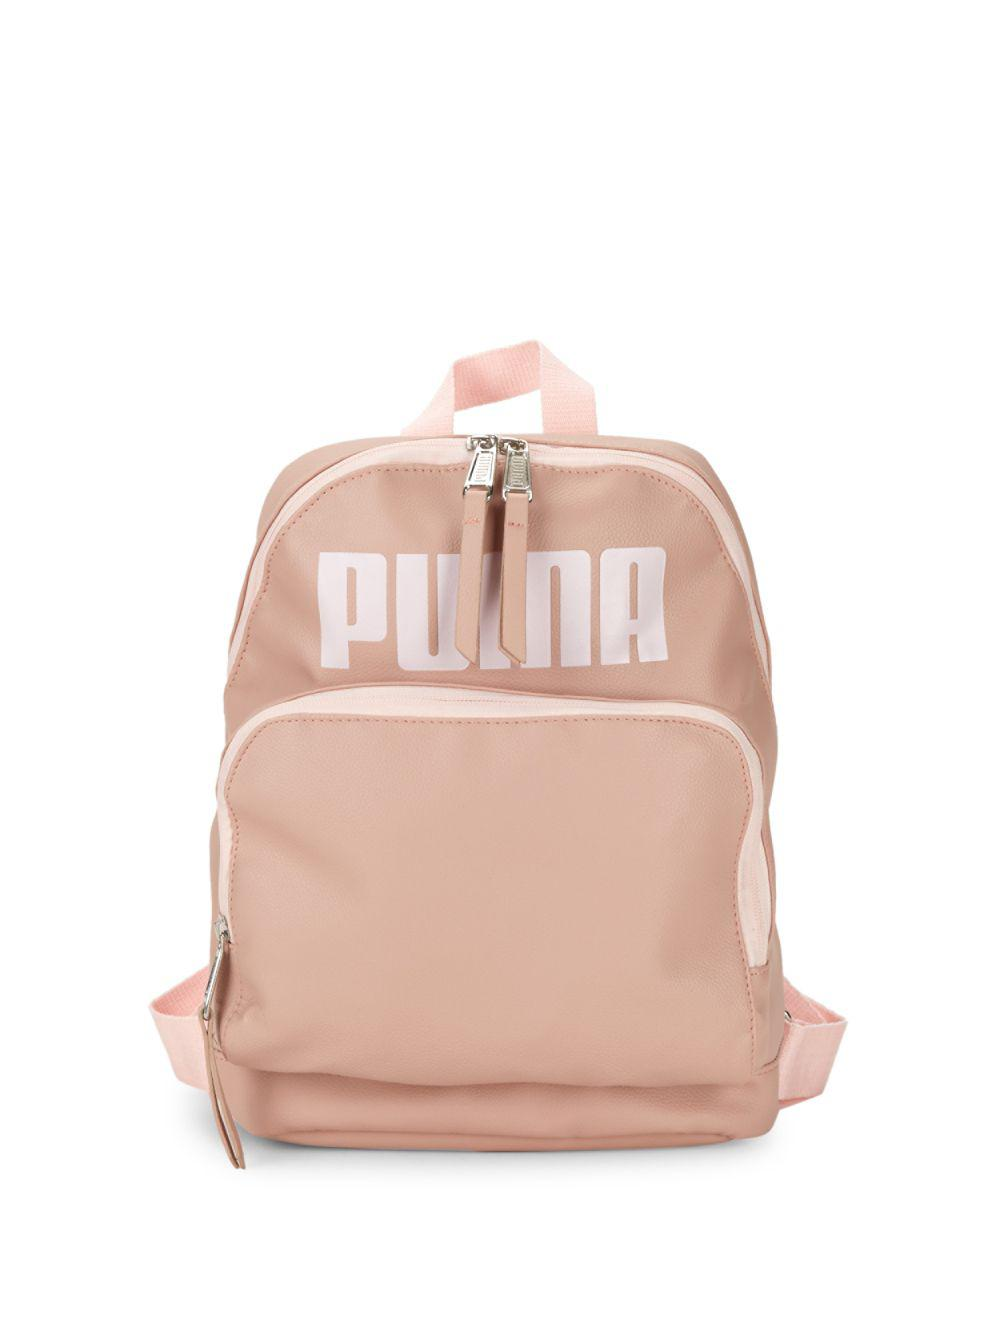 7449f005b98 Lyst - PUMA Evercat Royale Backpack in Pink